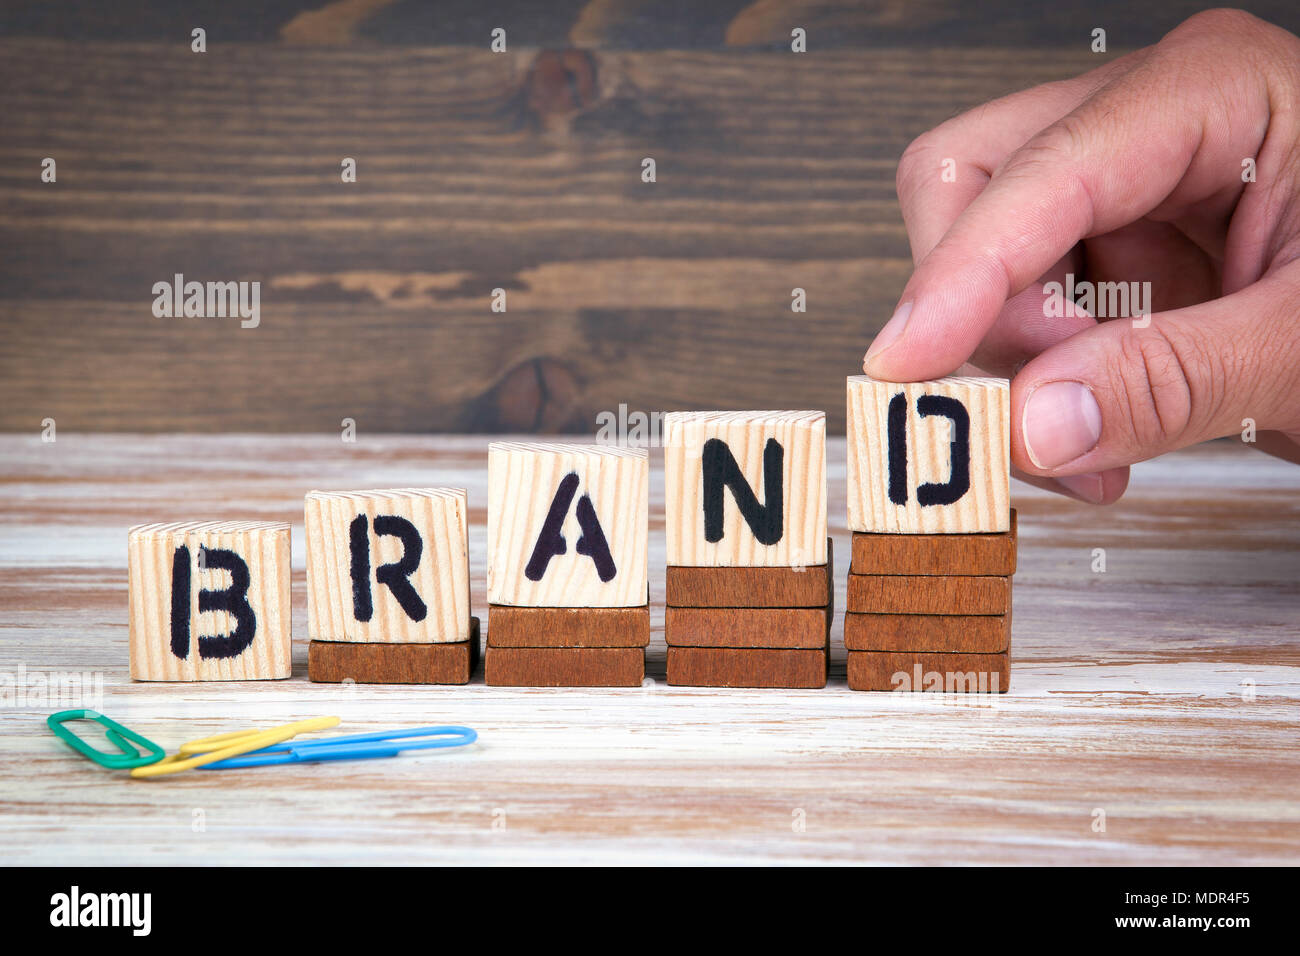 Brand concept. Wooden letters on the office desk, informative and communication background - Stock Image